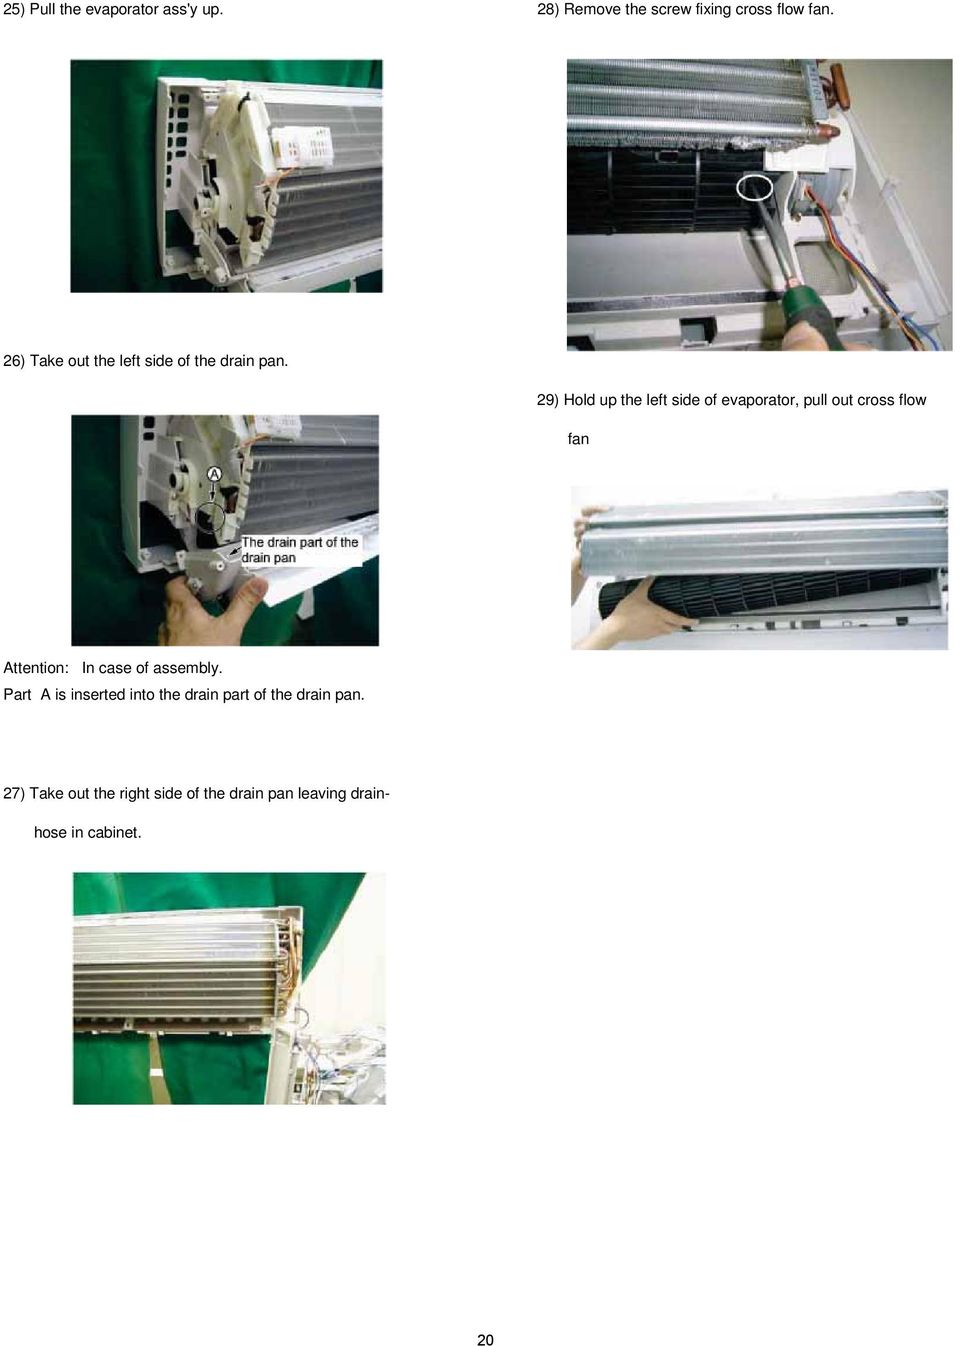 29) Hold up the left side of evaporator, pull out cross flow fan Attention: In case of